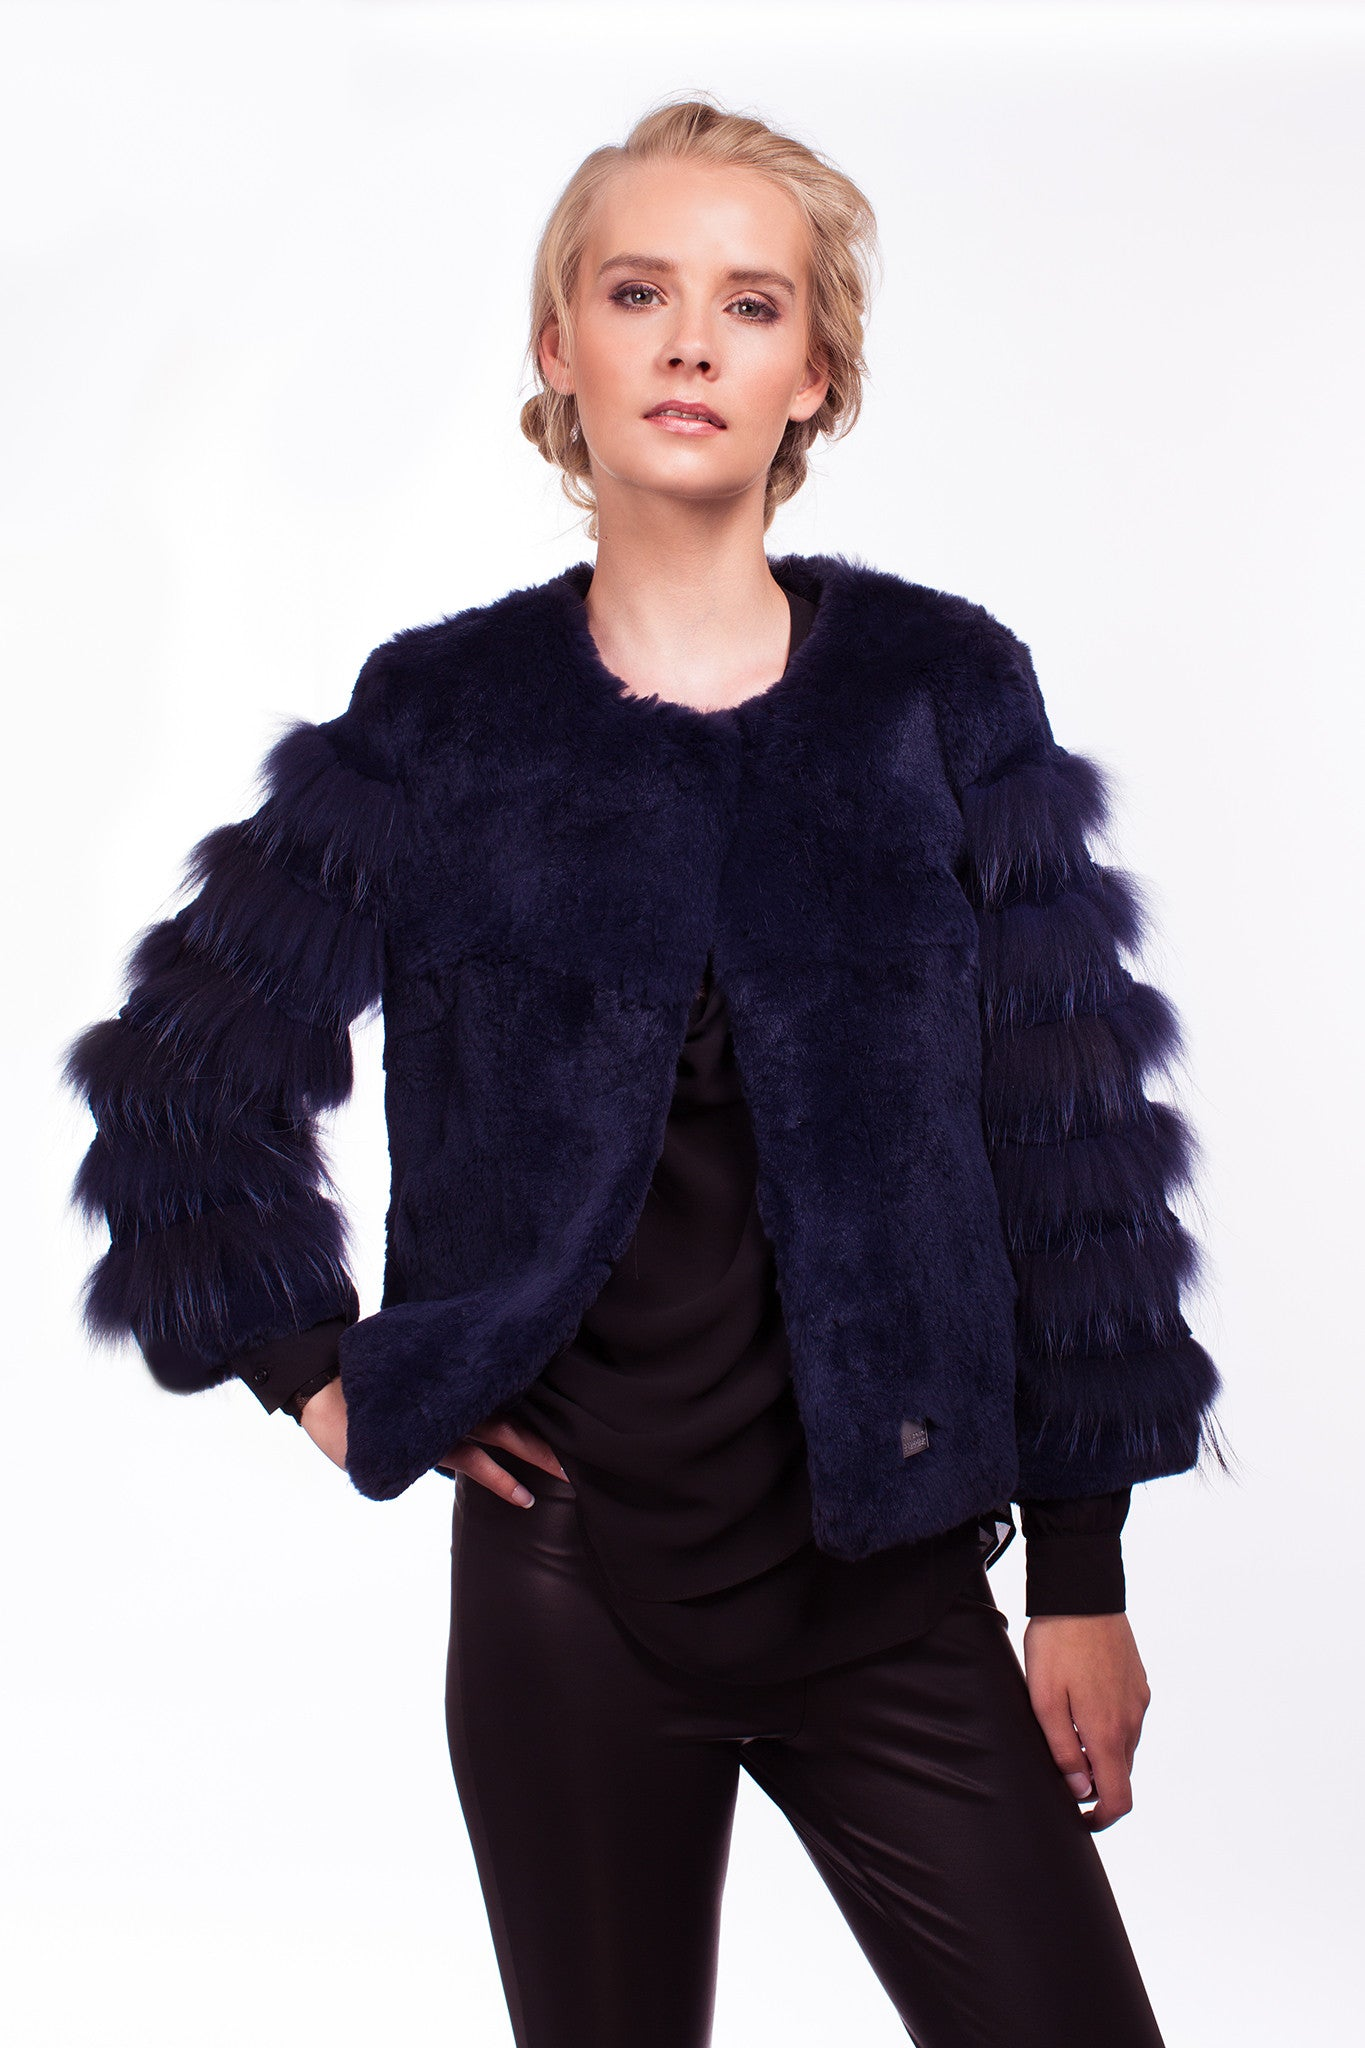 x Romilly Jacket in Ink - The Soho Furrier  - 1